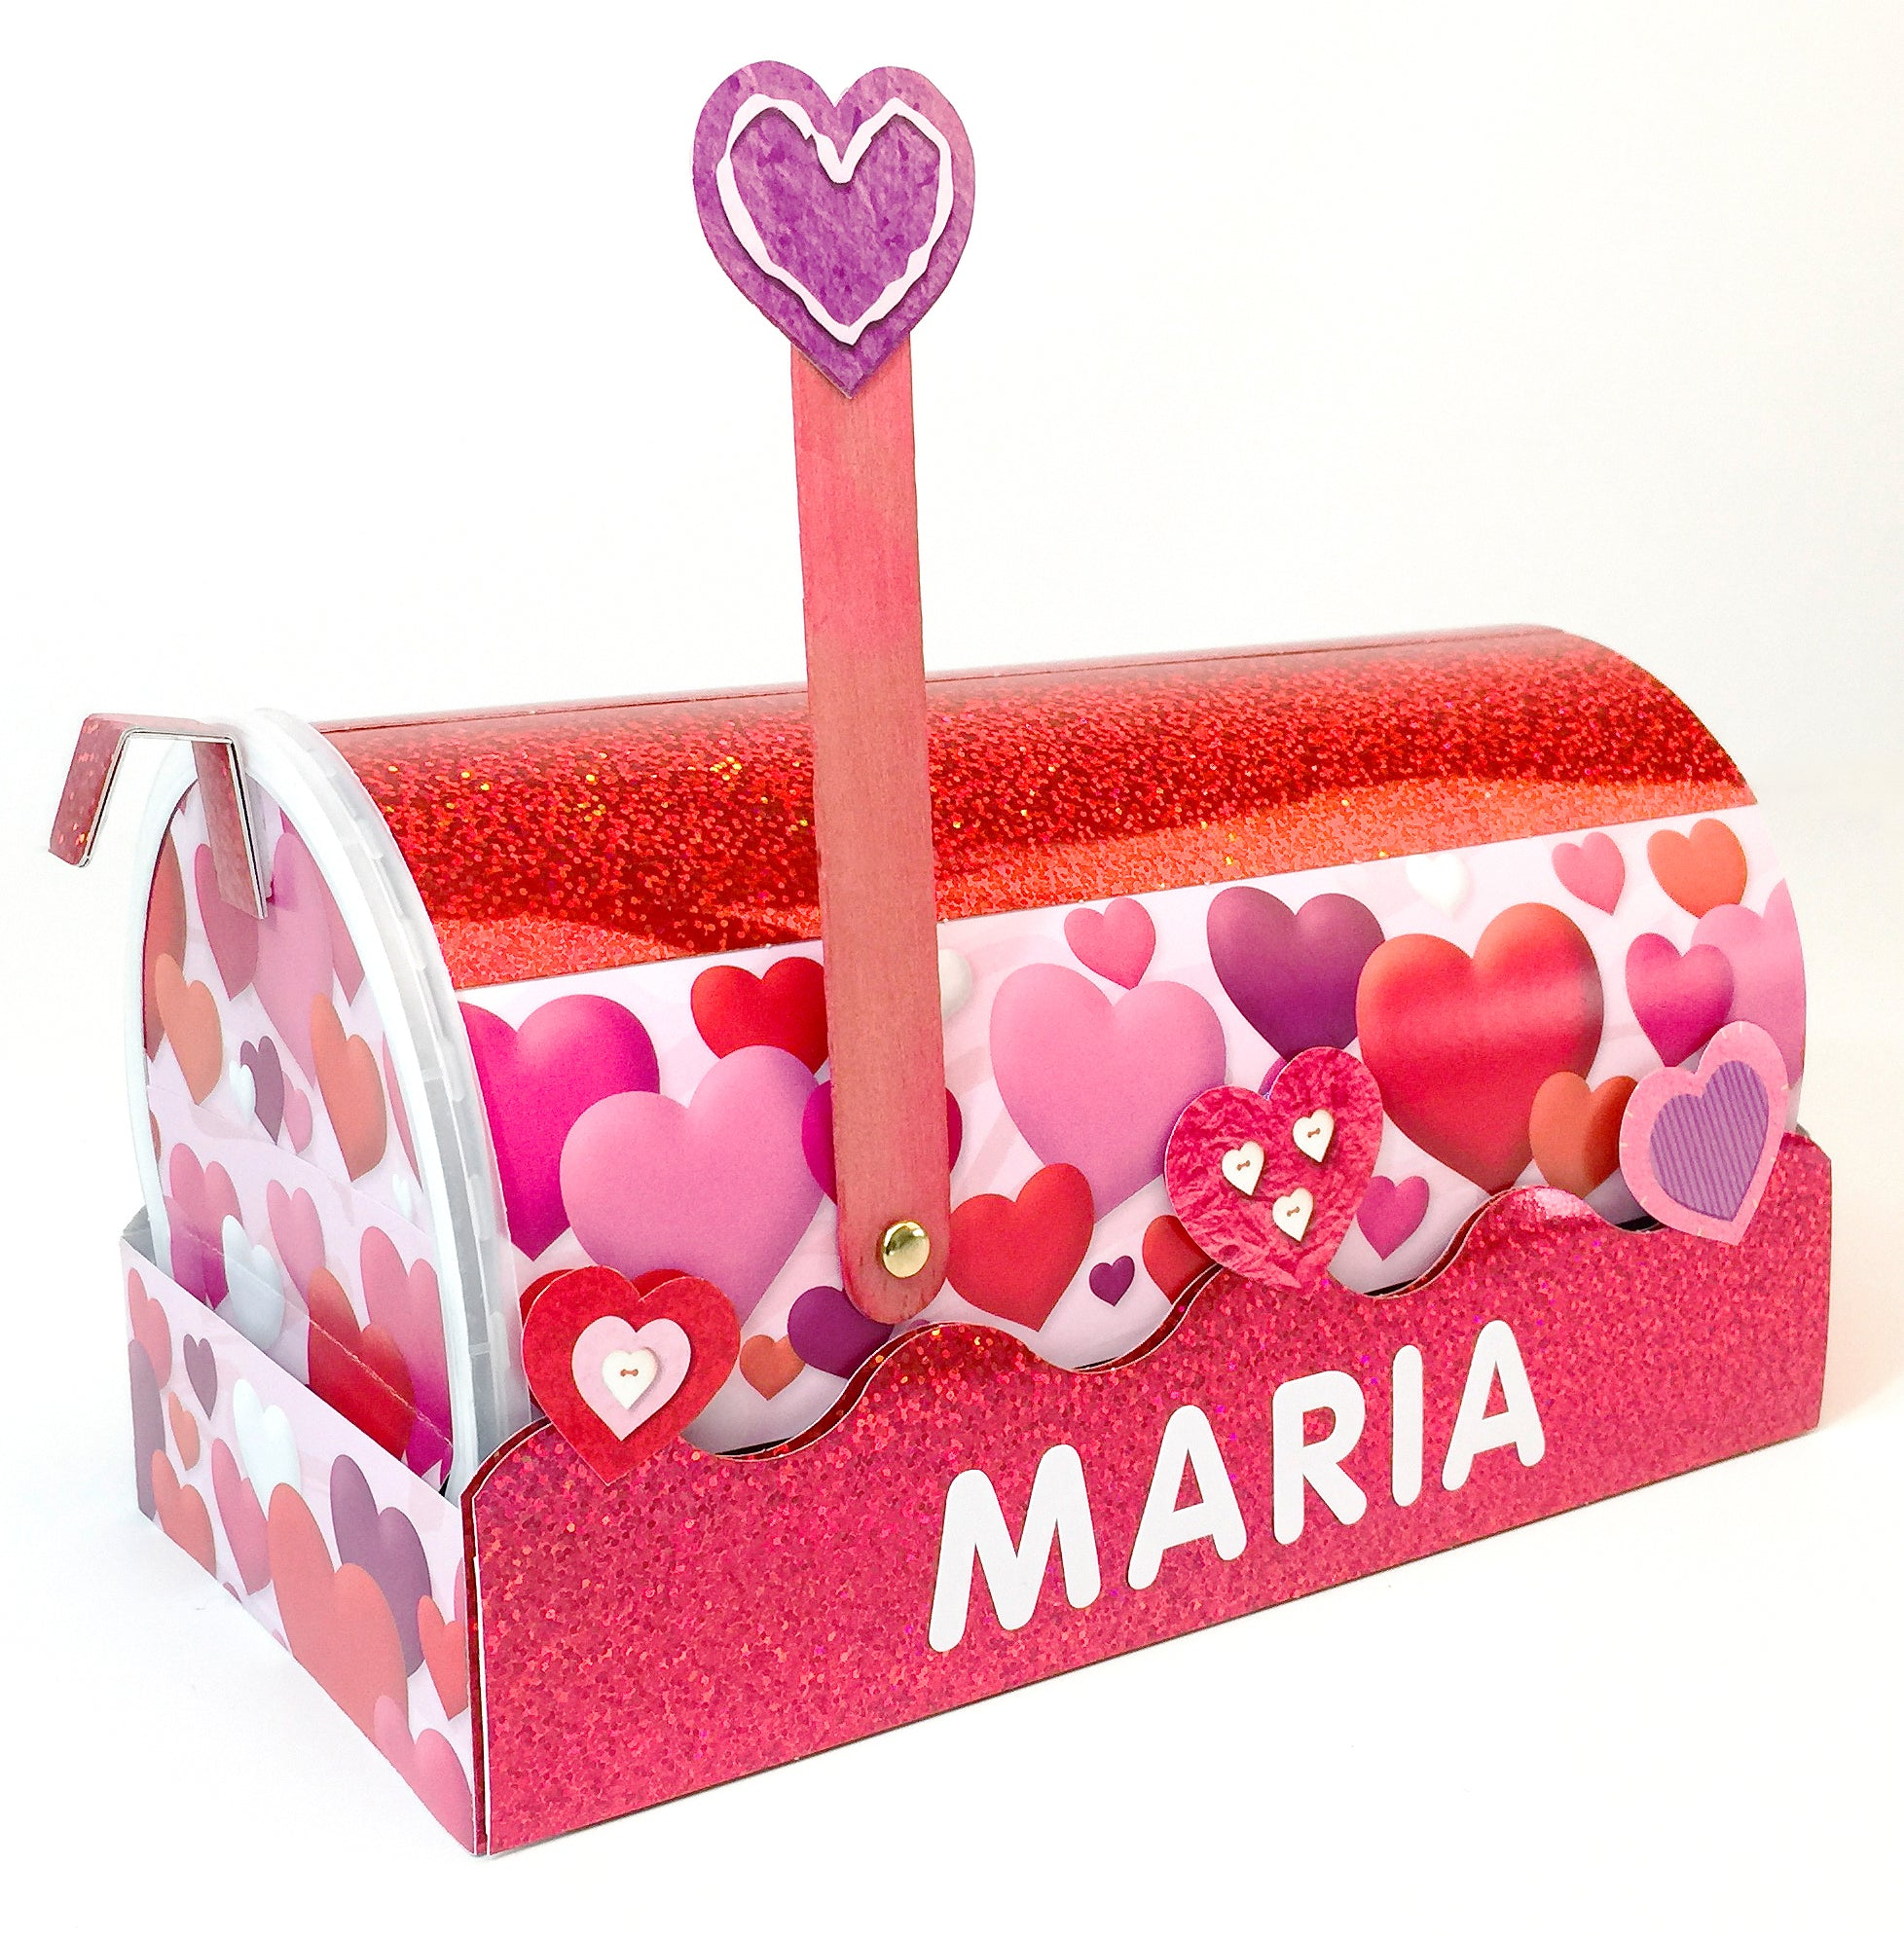 how to make a valentines card box ideas DIY party mailbox